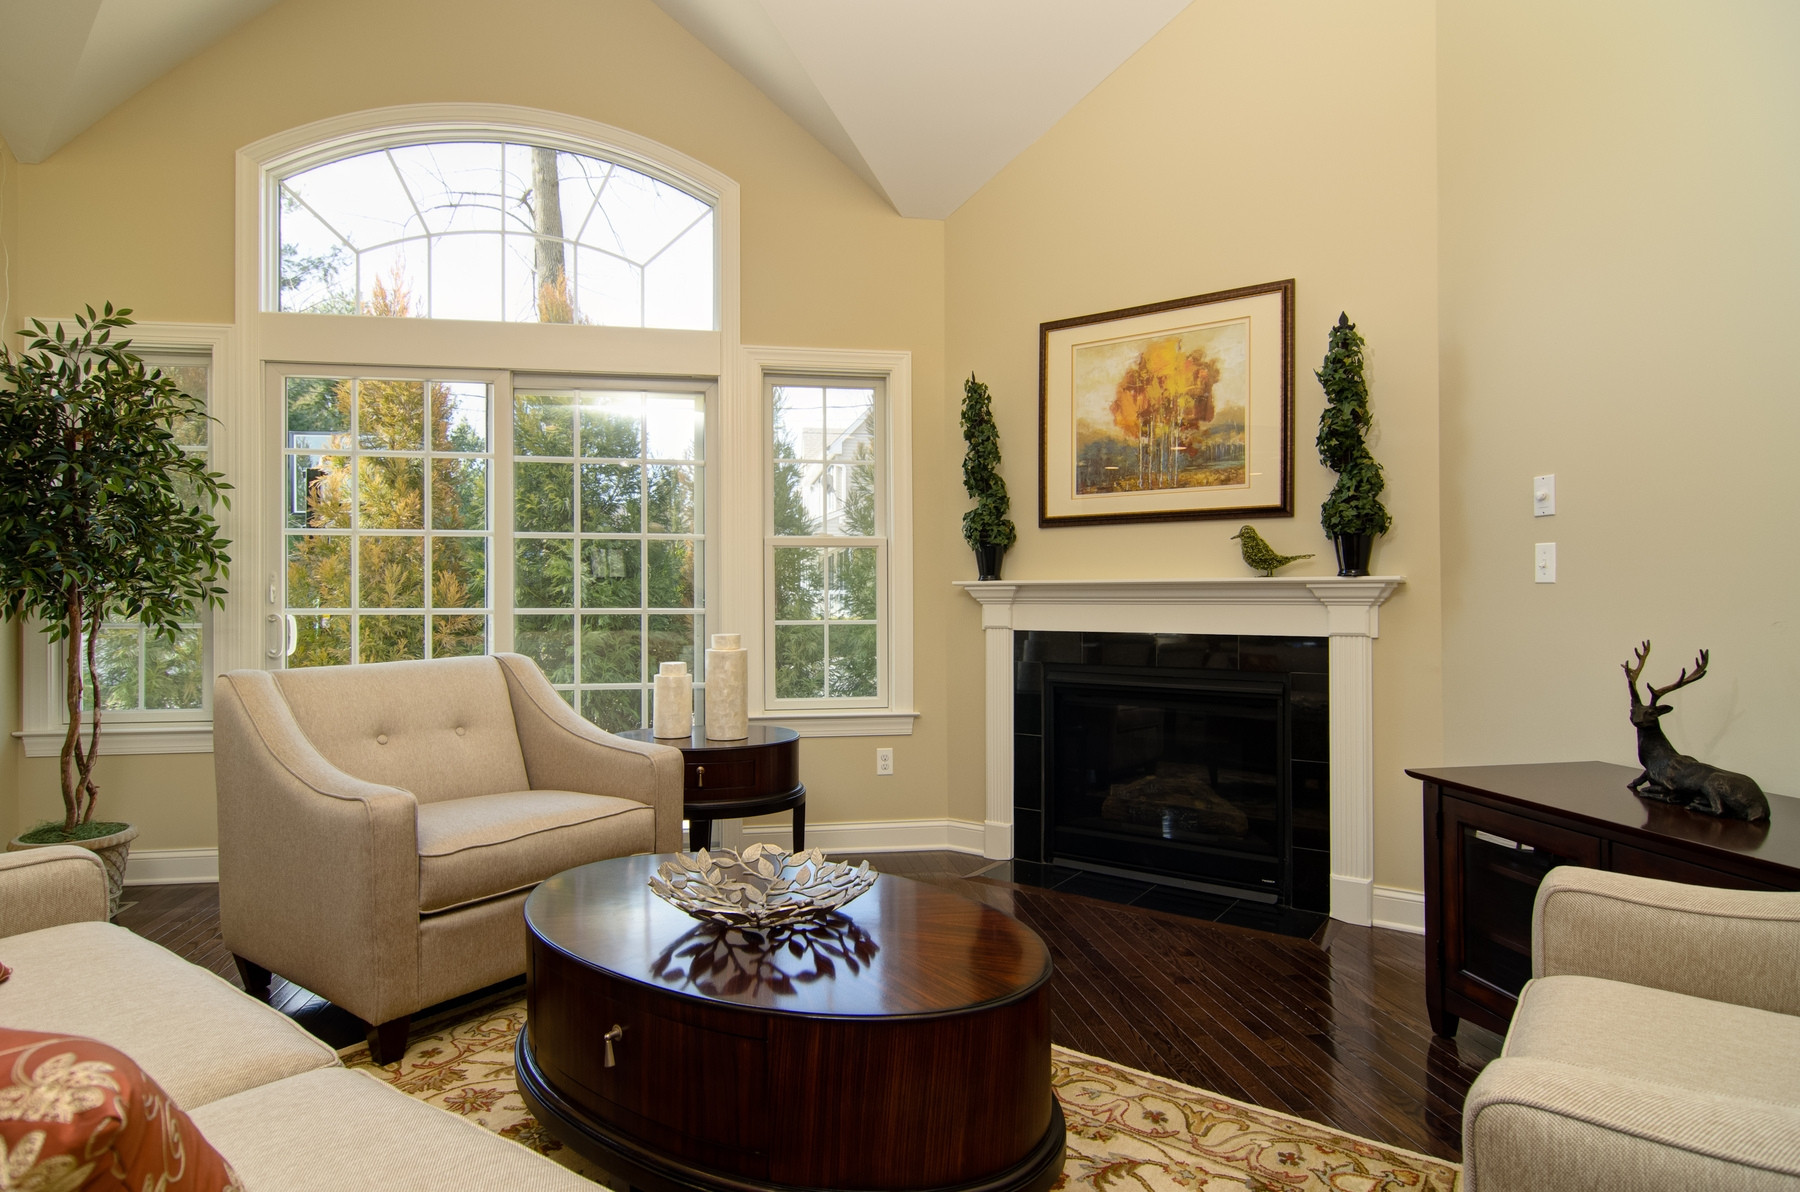 Best ideas about Paint Colors For Family Room . Save or Pin Teen Bedroom Interior With Three Tone Color Scheme Design Now.